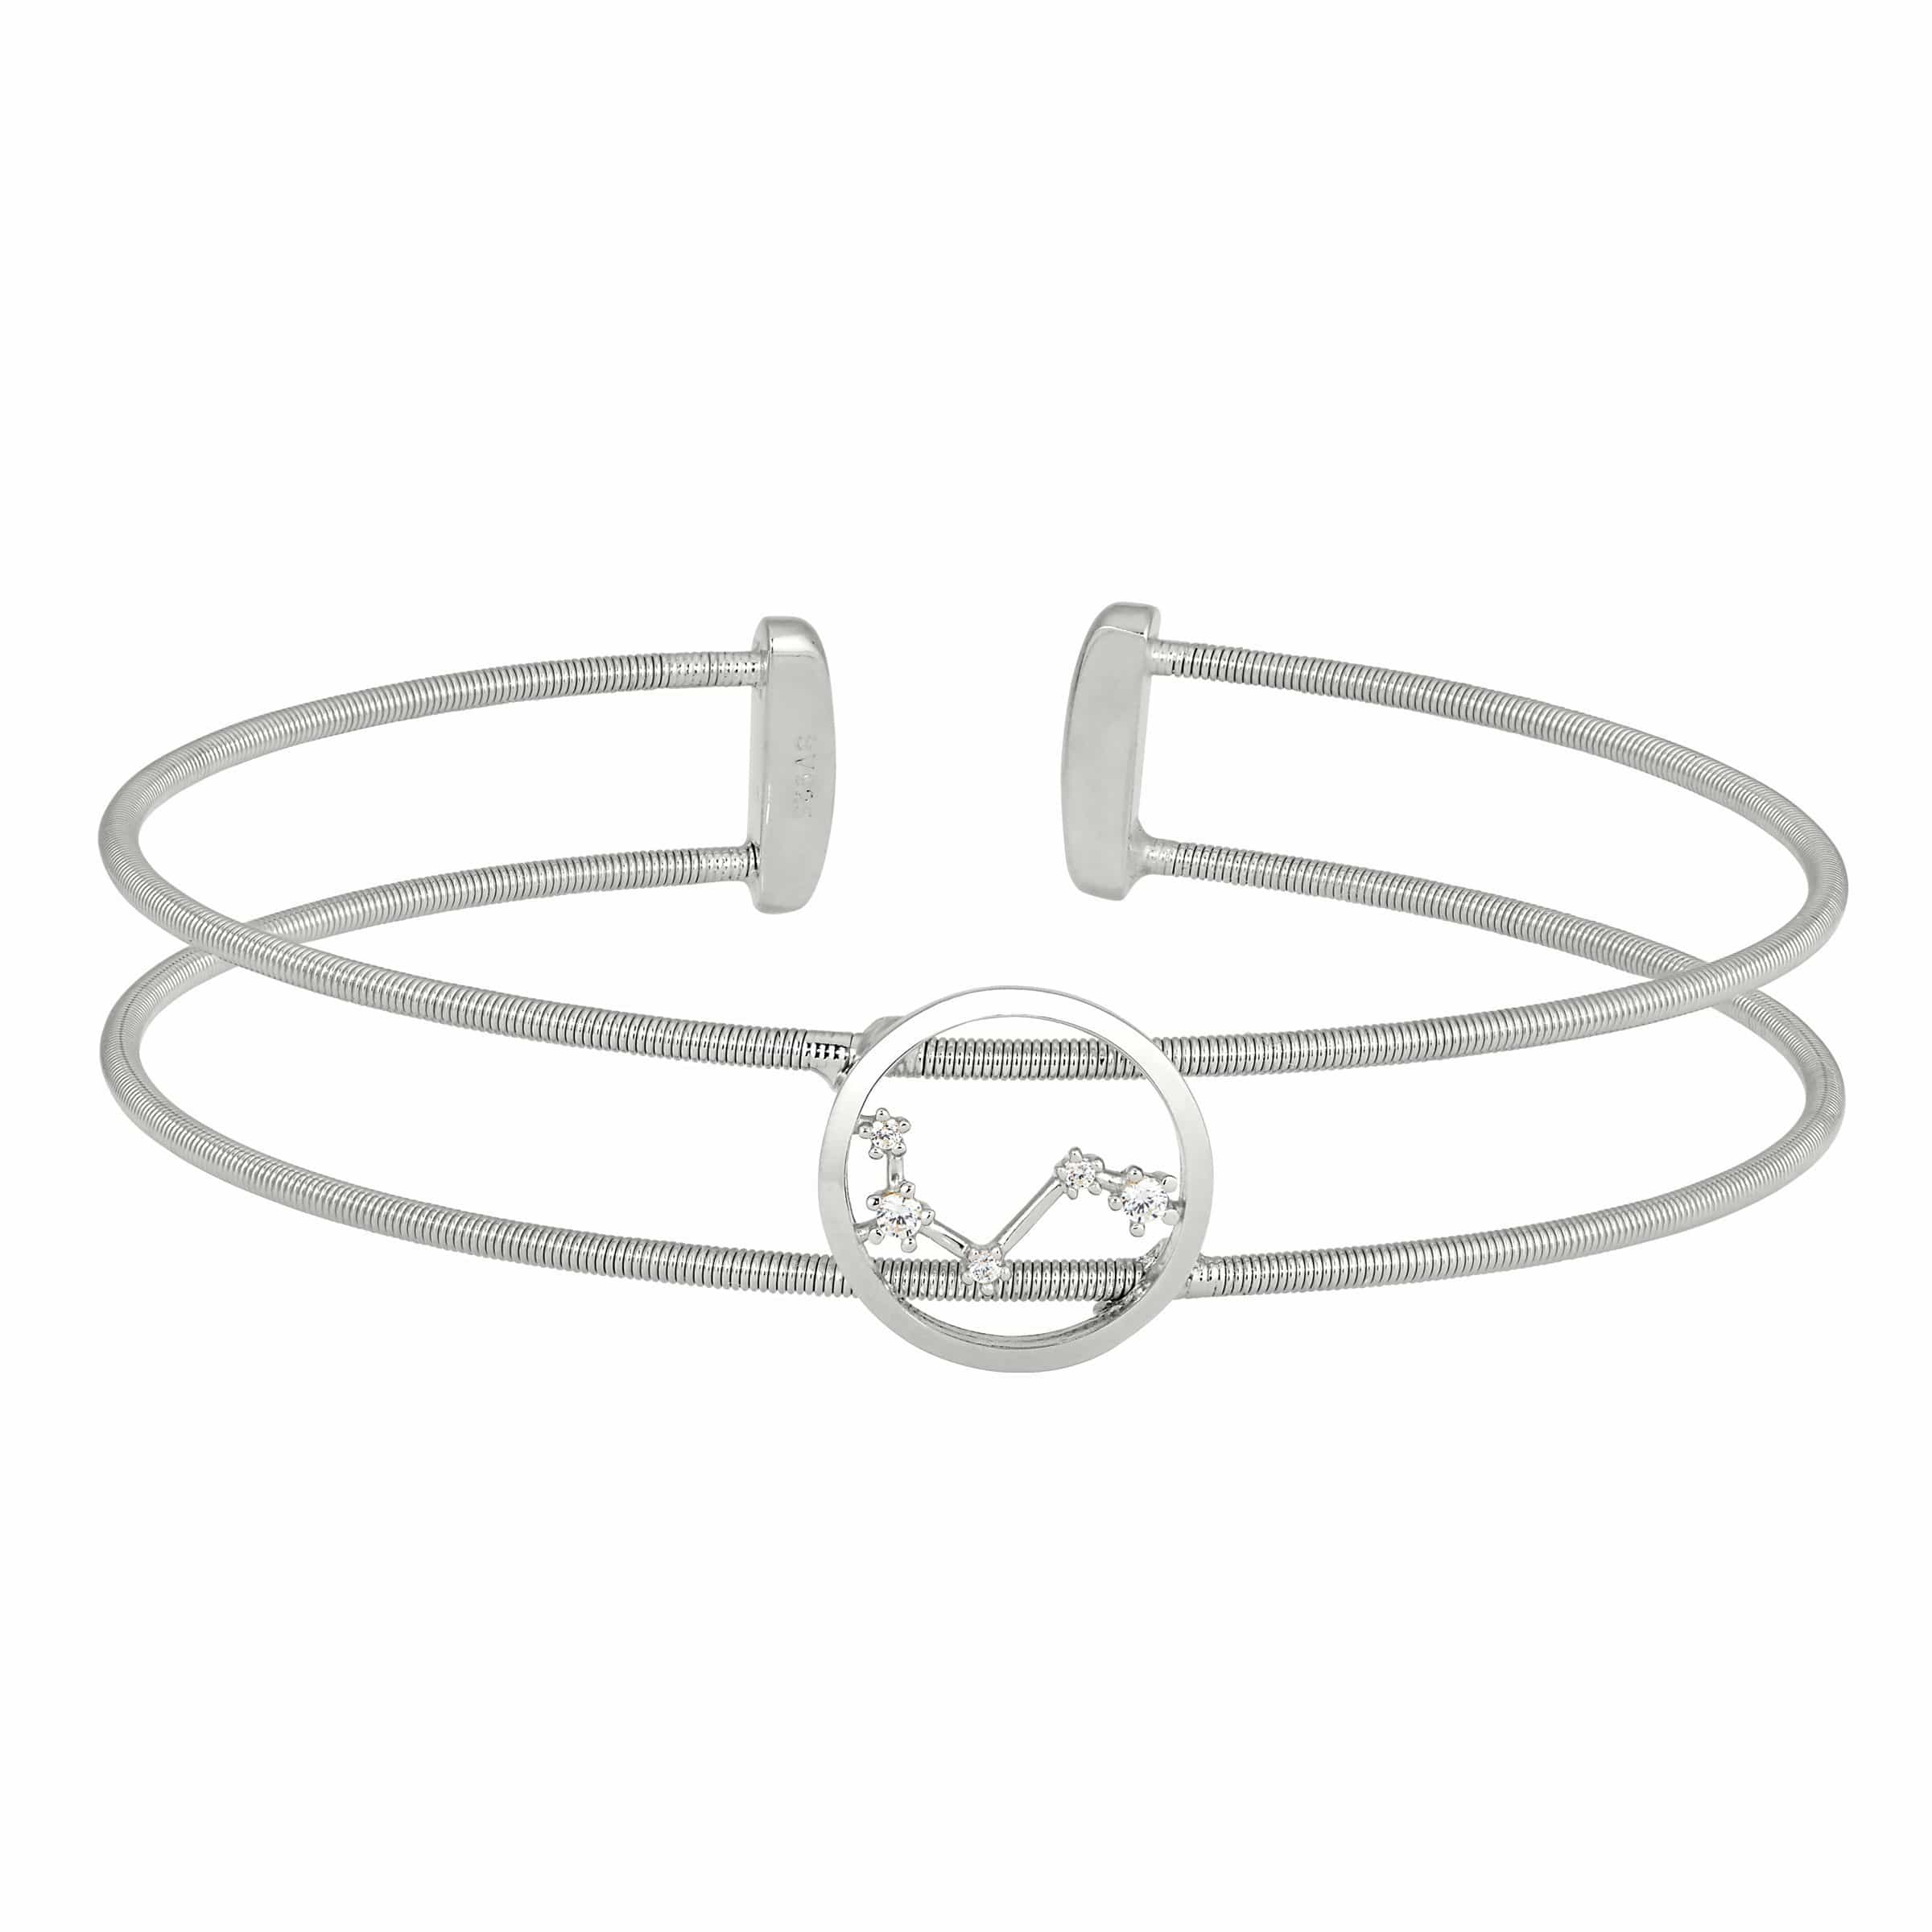 Rhodium Finish Sterling Silver Cable Cuff Constellation Aries Bracelet - LL7047B3-RH-Kelly Waters-Renee Taylor Gallery